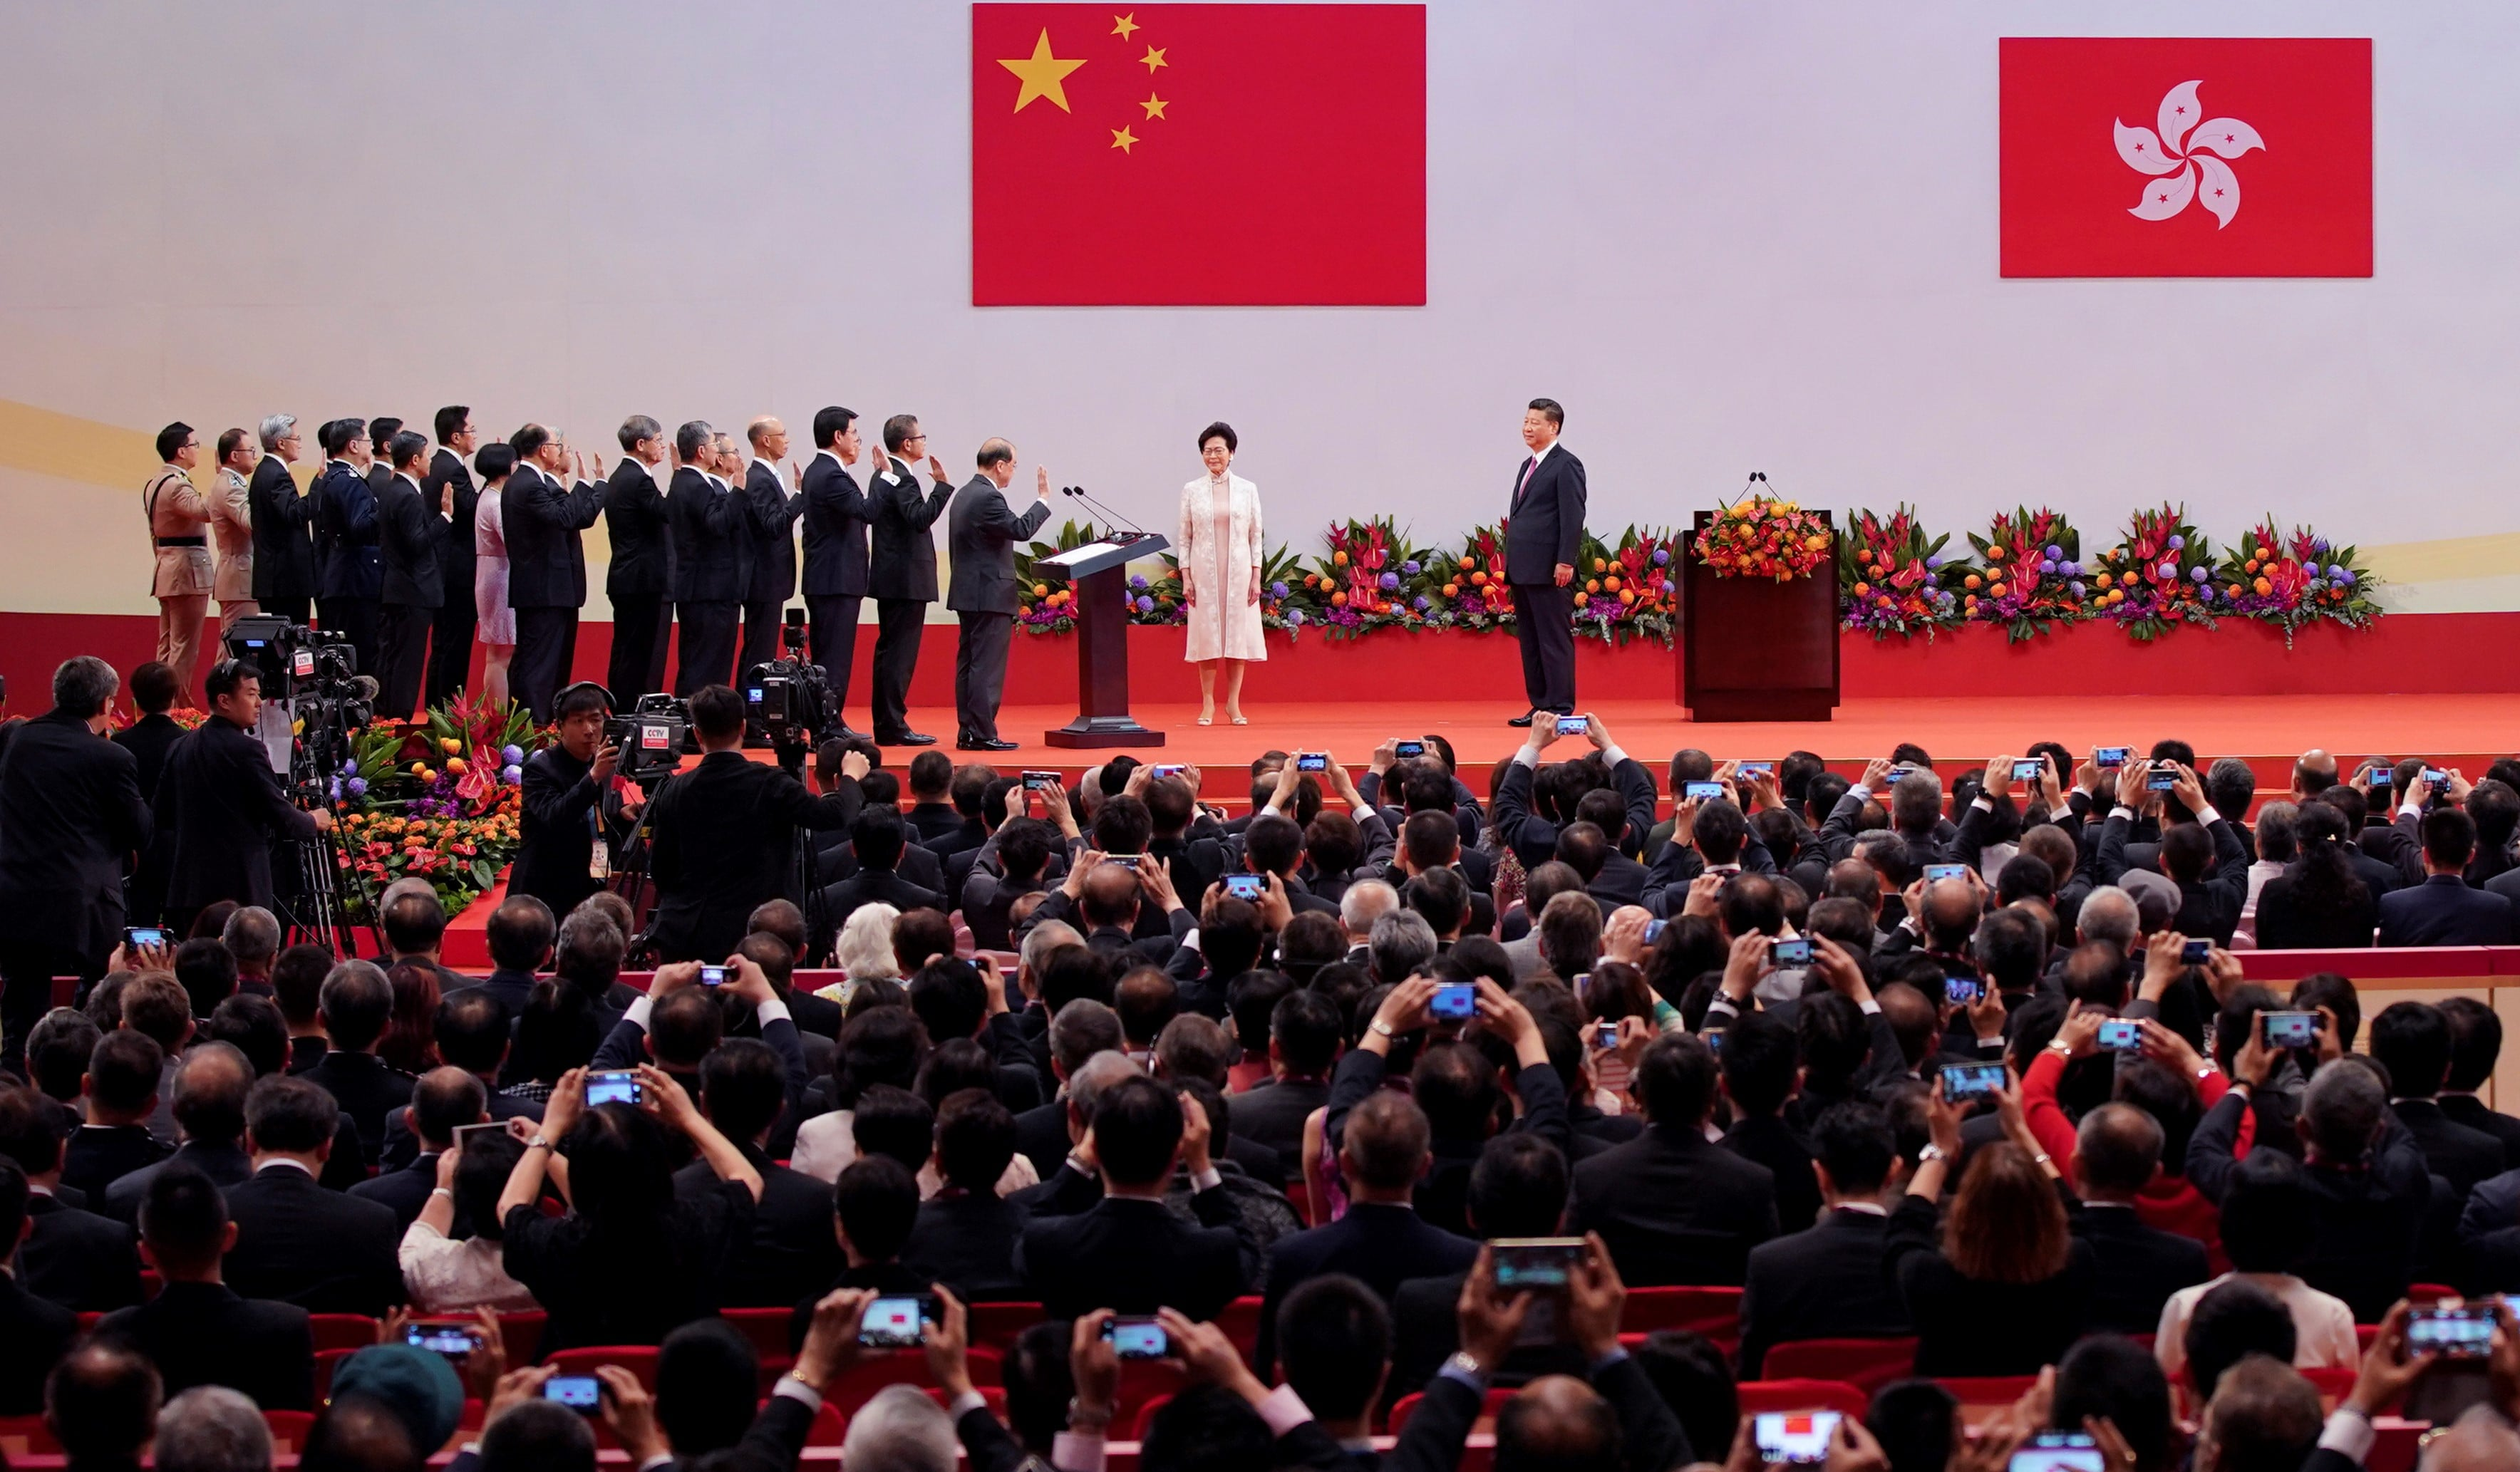 Hong Kong Chief Executive Carrie Lam and her cabinet are sworn in by Chinese President Xi Jinping, July 2017 (Photo: Getty Images/VCG)